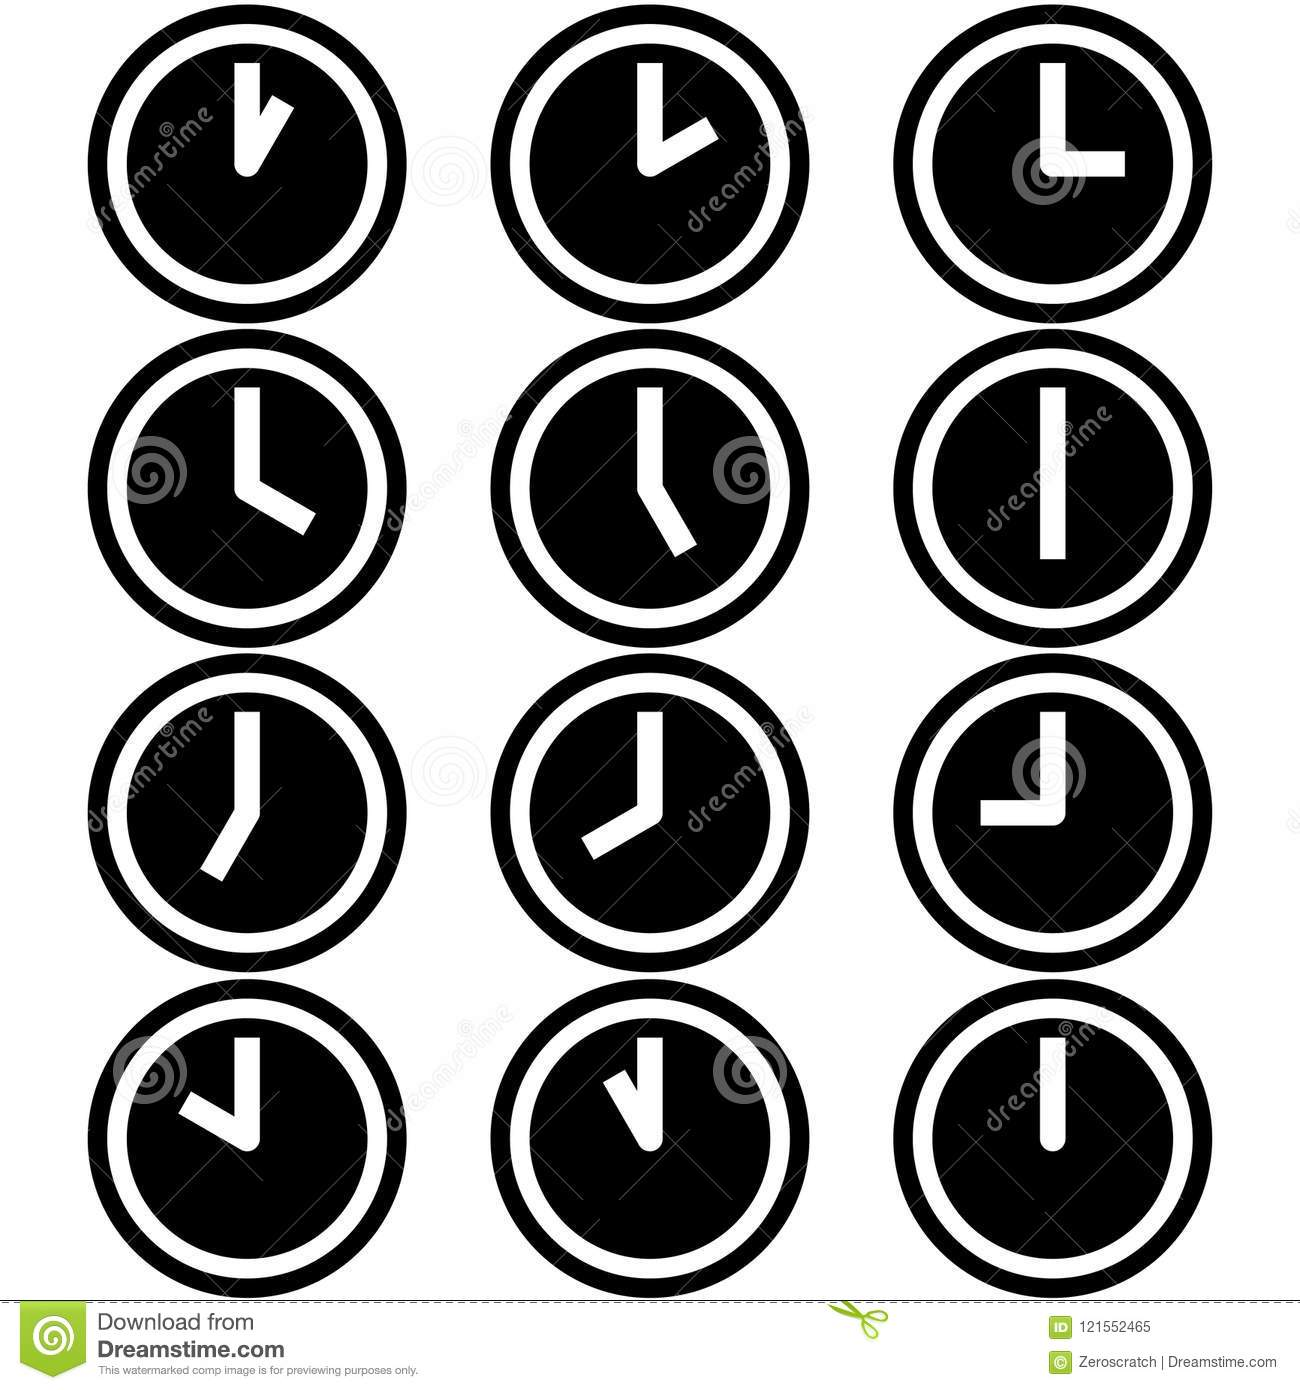 Clocks showing different time hours symbols icons signs logos simple black and white colored set 2